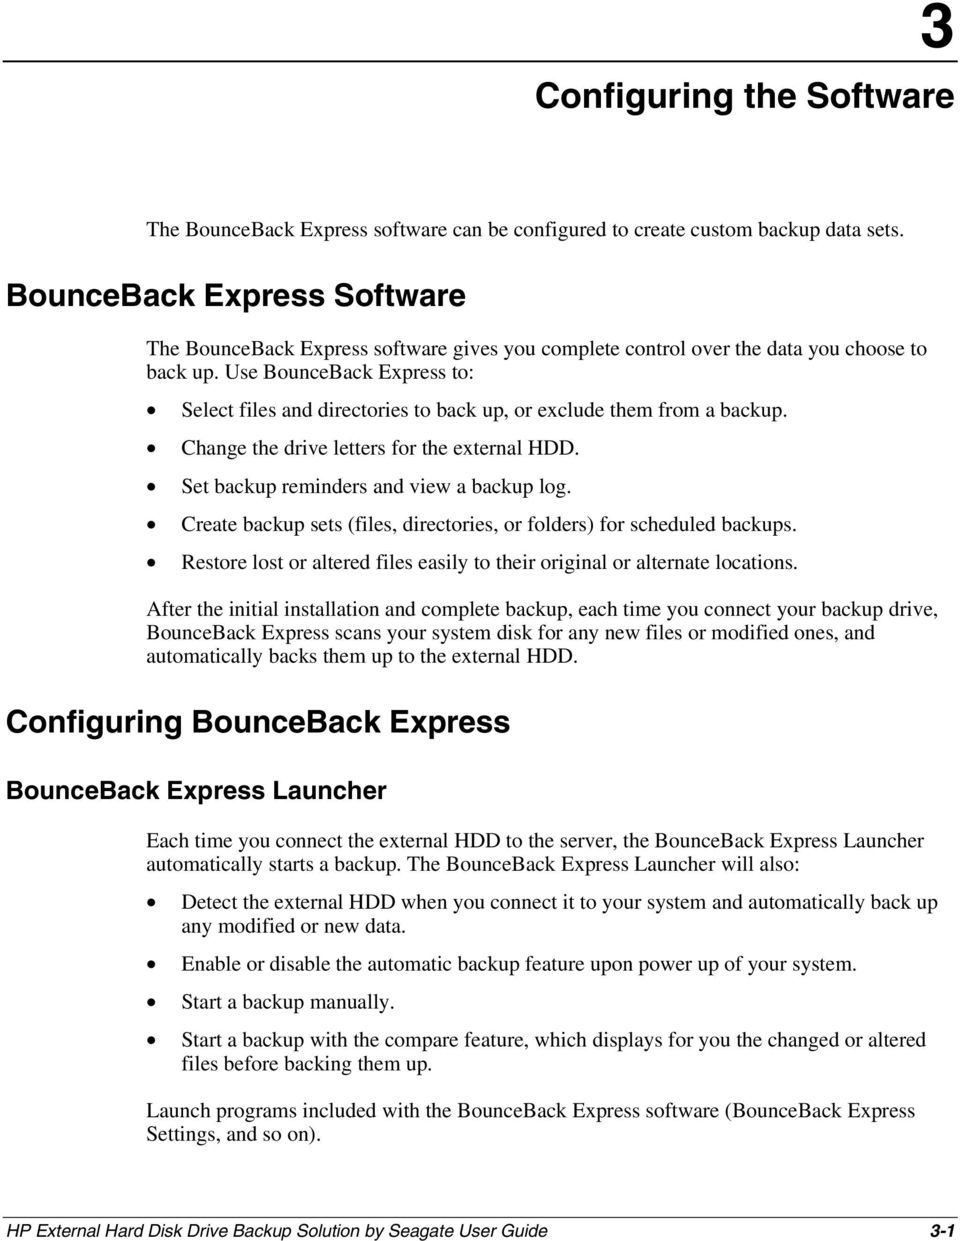 Use BounceBack Express to: Select files and directories to back up, or exclude them from a backup. Change the drive letters for the external HDD. Set backup reminders and view a backup log.